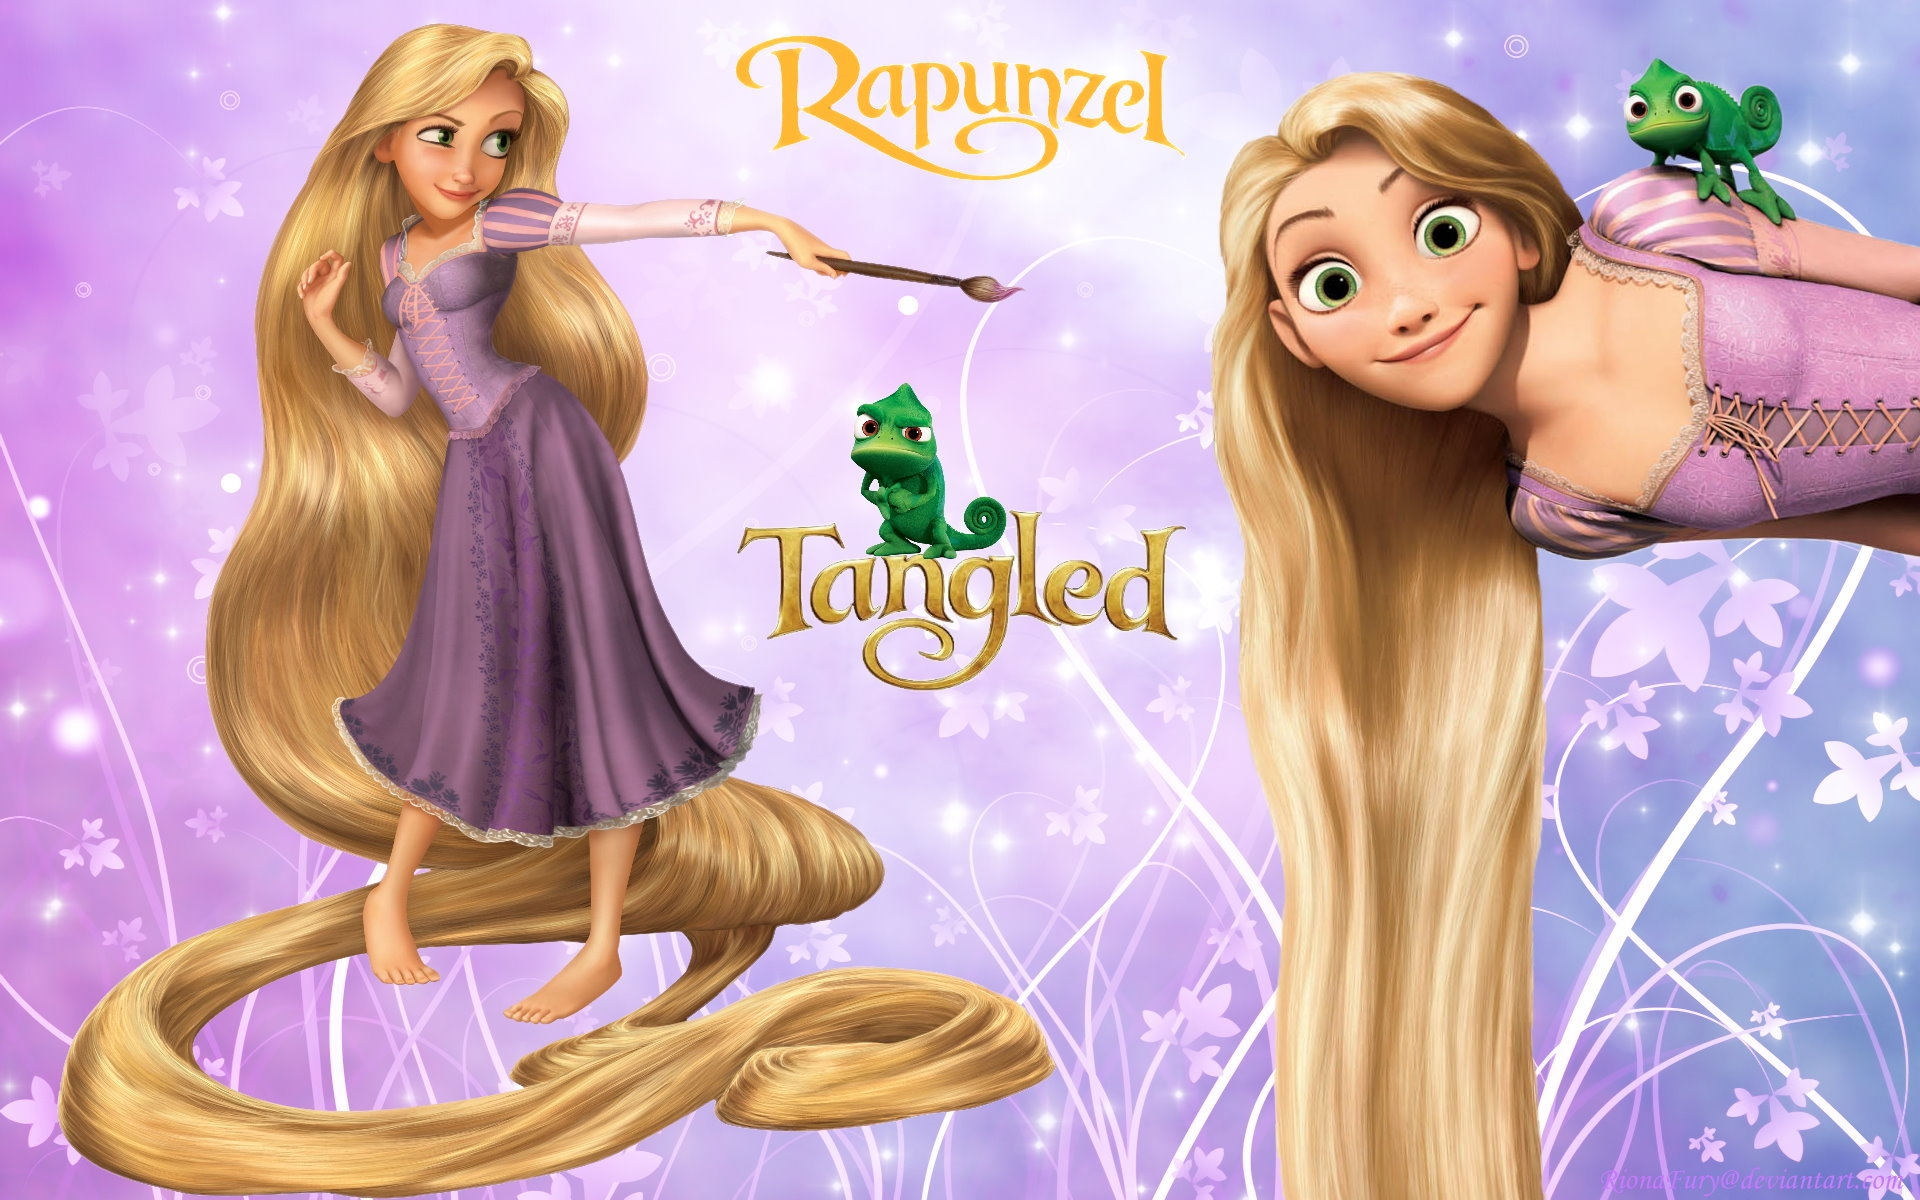 disney princess rapunzel tangled free hd wallpaper 1920 1200